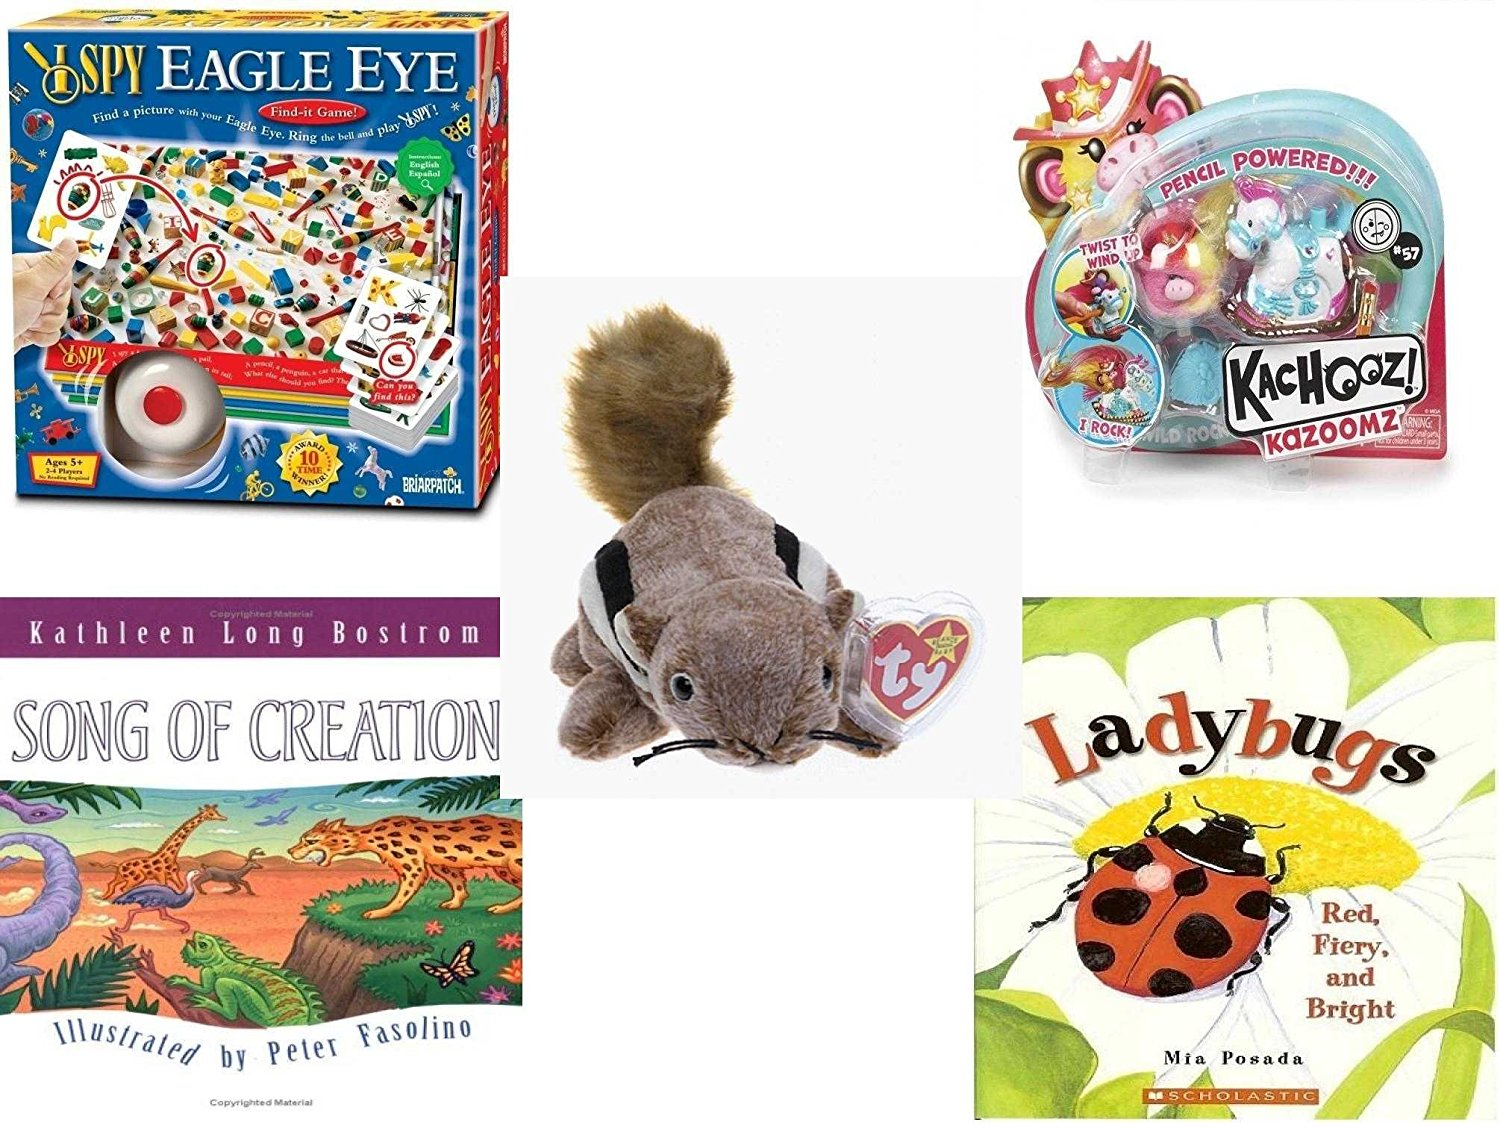 Children's Gift Bundle - Ages 3-5 [5 Piece] - I SPY Eagle Eye Game - MGA Kachooz Feature Rocking Horse Toy - Ty Beanie Baby - Chipper the Chipmunk - Song of Creation Hardcover Book - Ladybugs: Red,